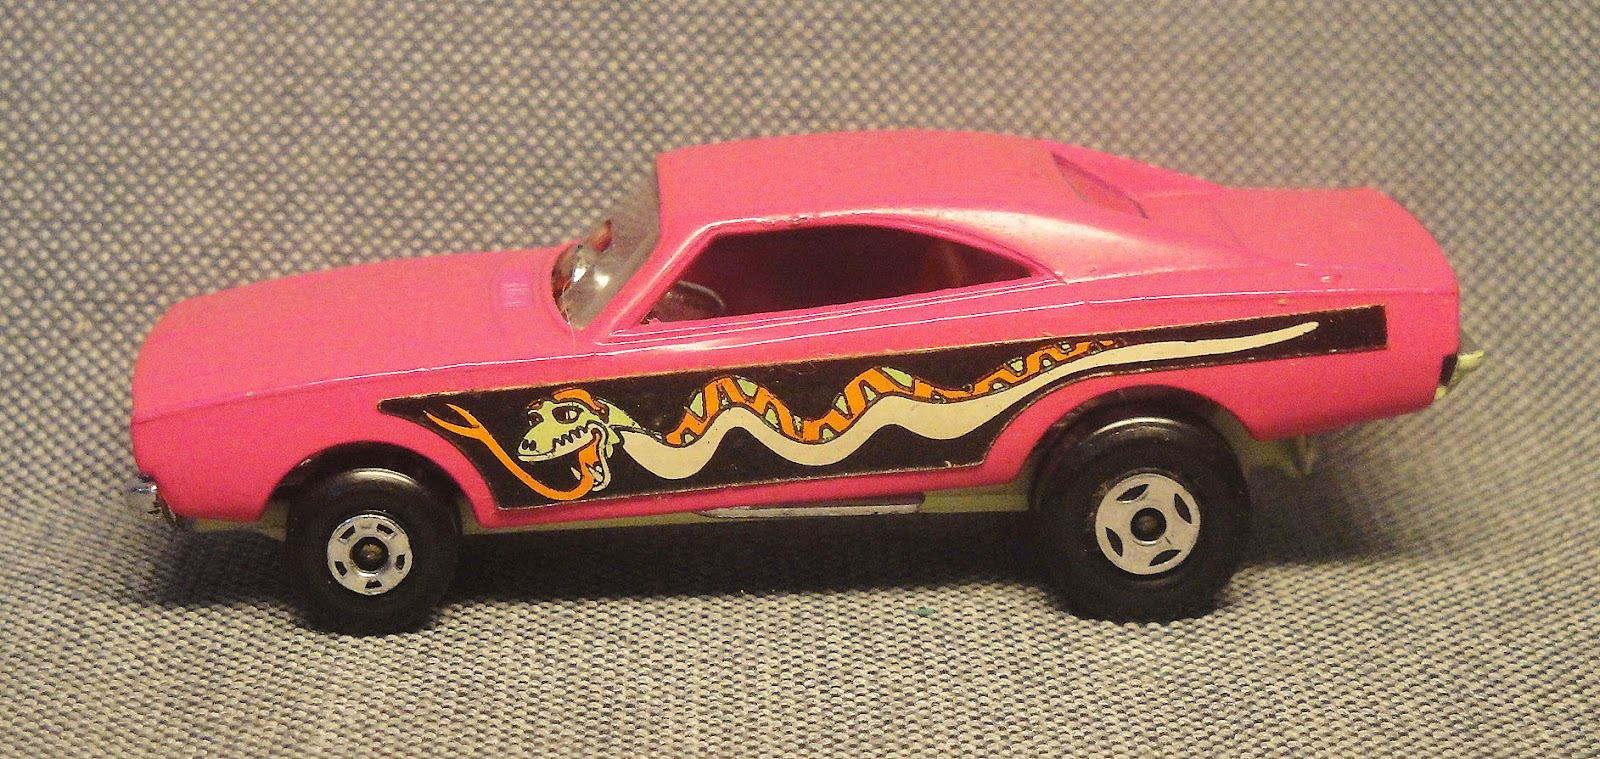 Archivo de autos: Dodge Dragster a la Matchbox